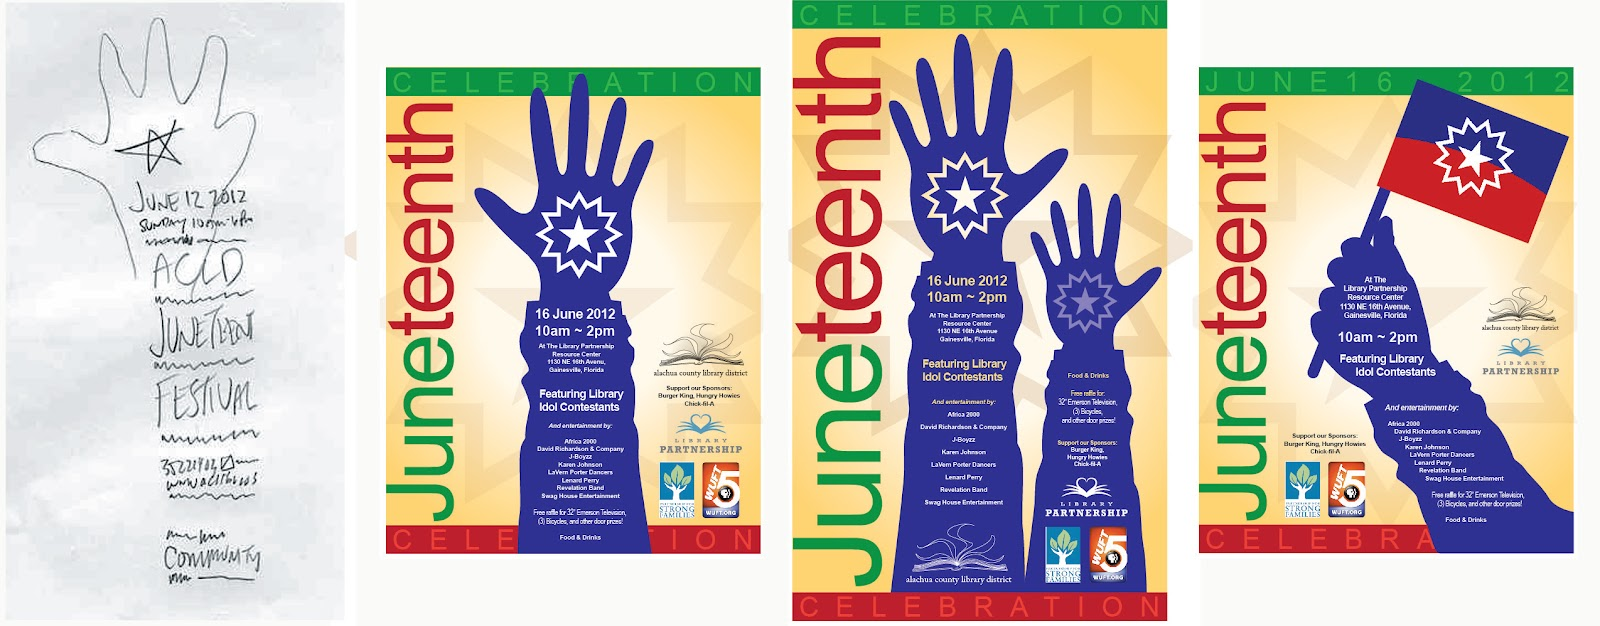 Design for Library Juneteenth Event 2012 | History of Graphic Design